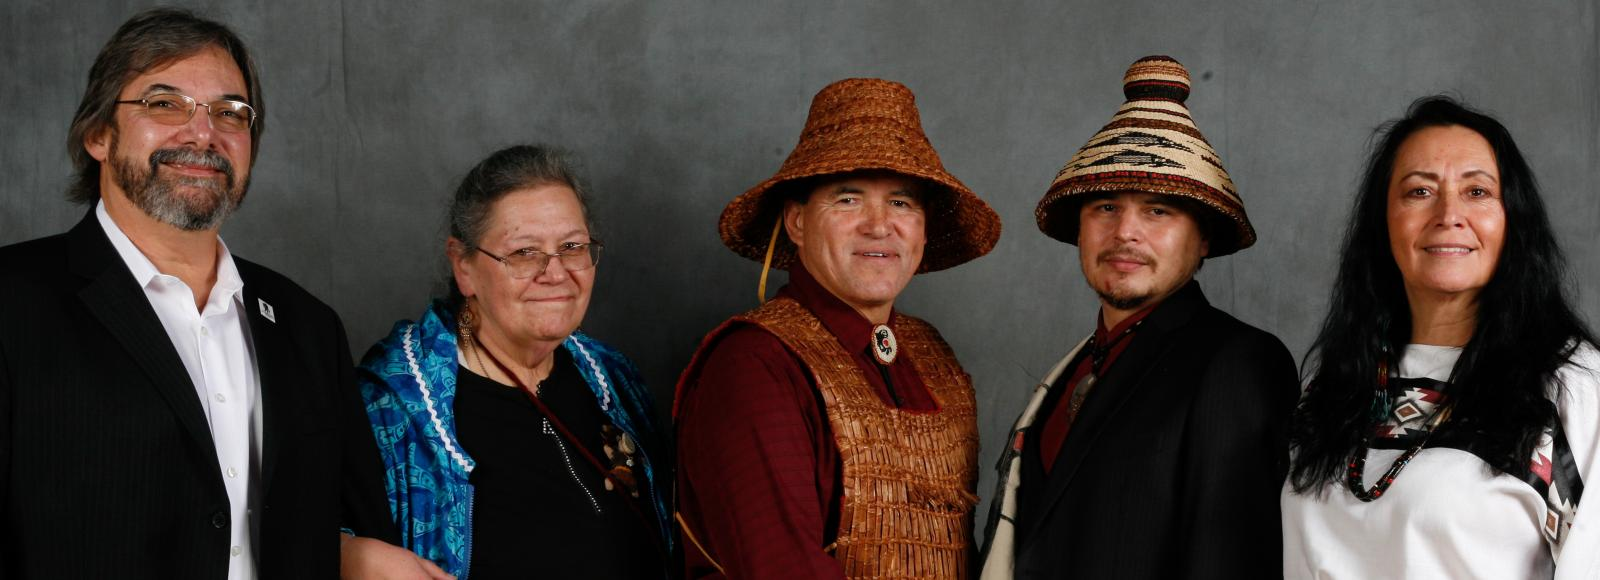 2012 Ecotrust Indigenous Leadership Award honorees